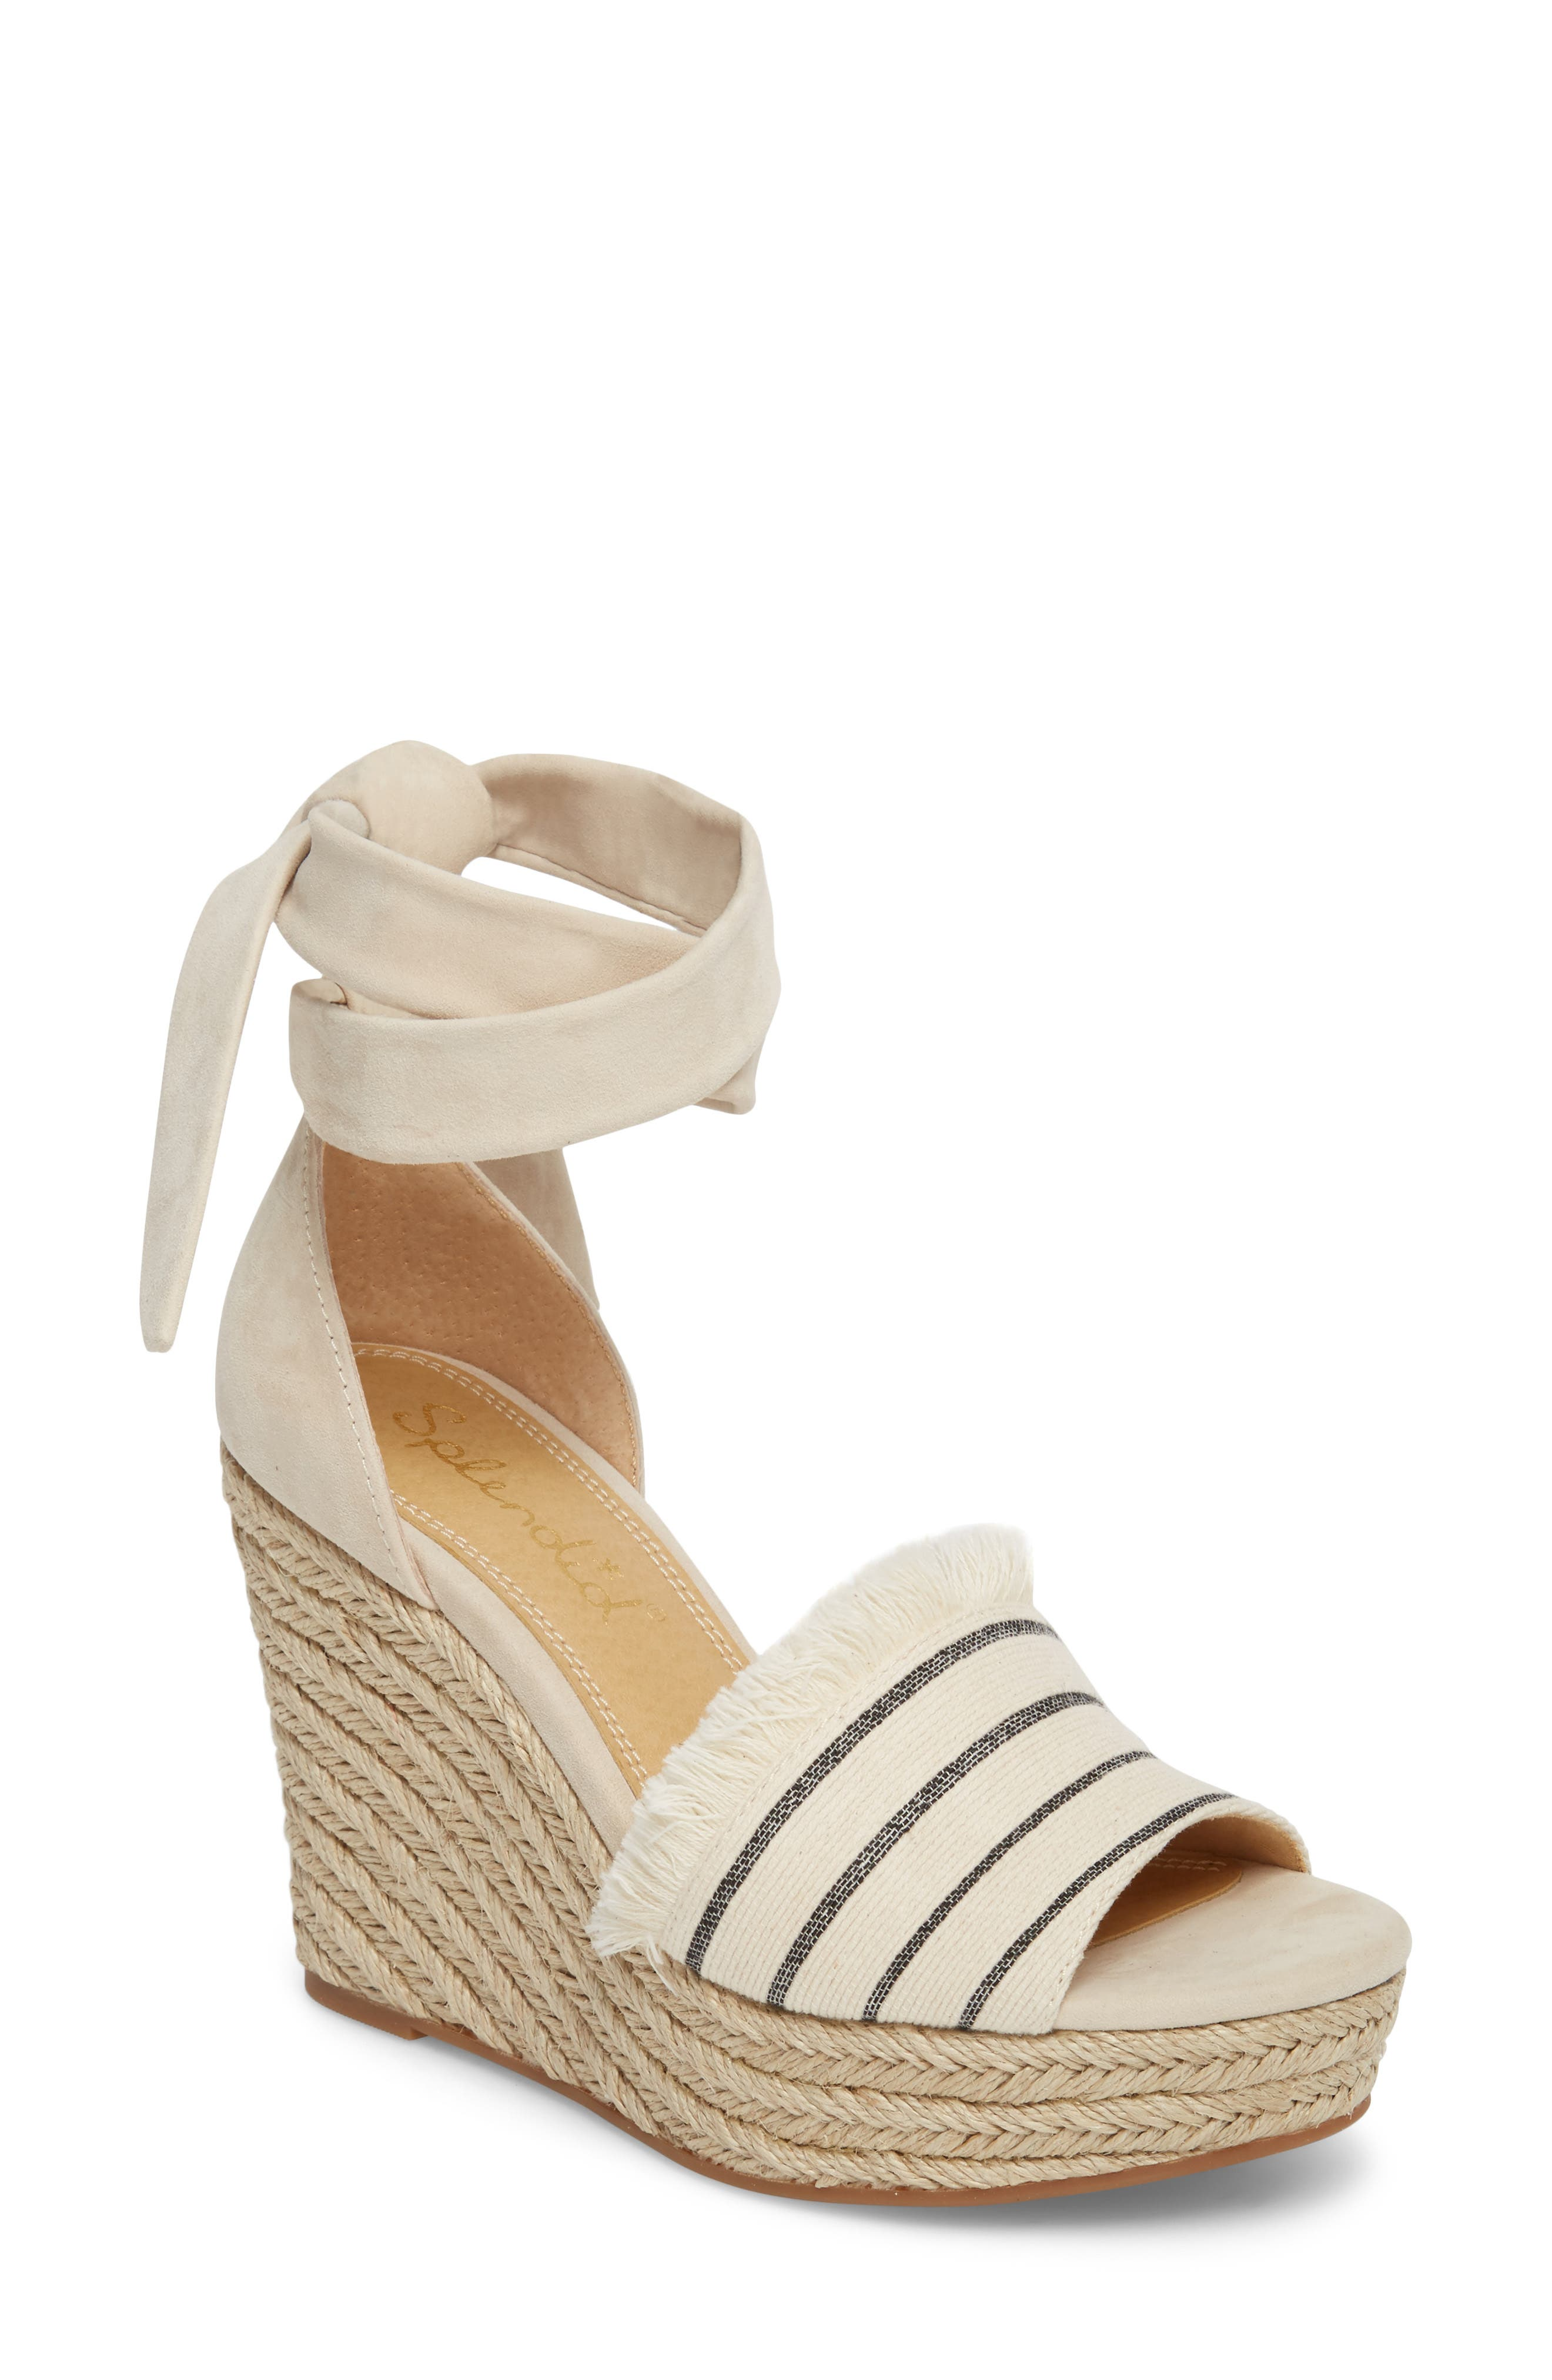 Barke Fringed Platform Wedge Sandal,                         Main,                         color, 100